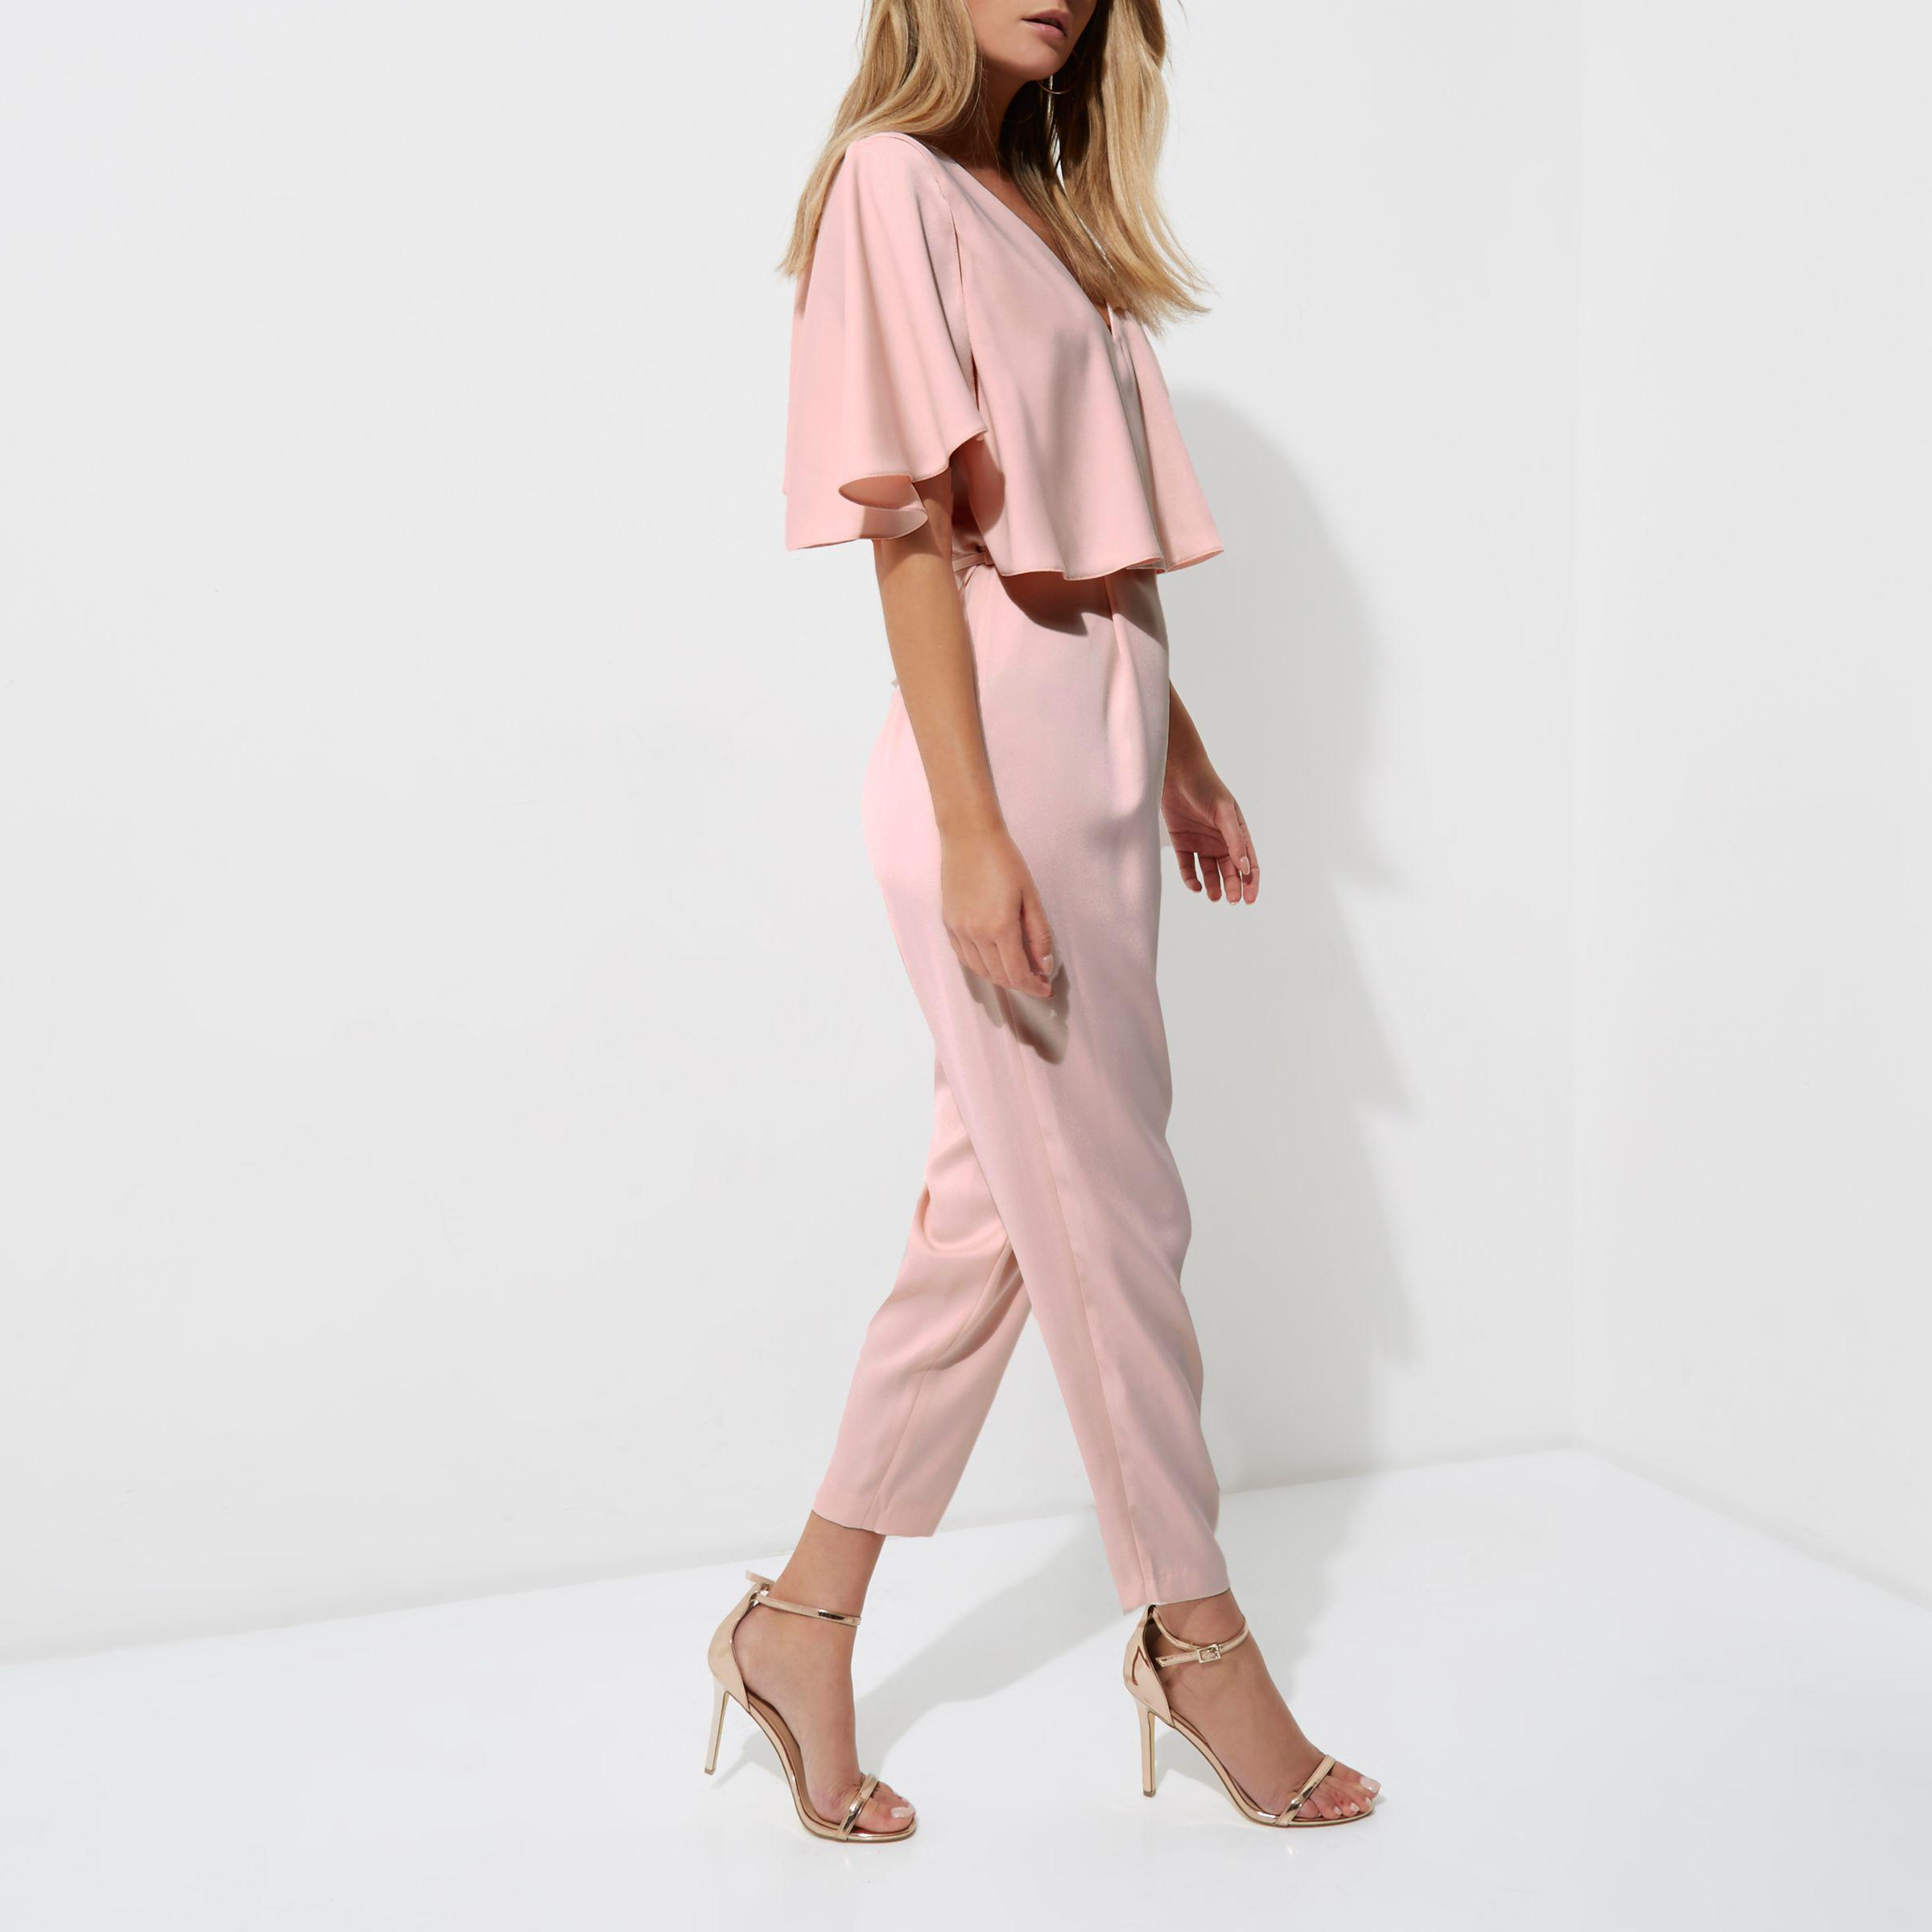 acbcff104135 Lyst - River Island Light Pink Cape Tapered Jumpsuit in Pink